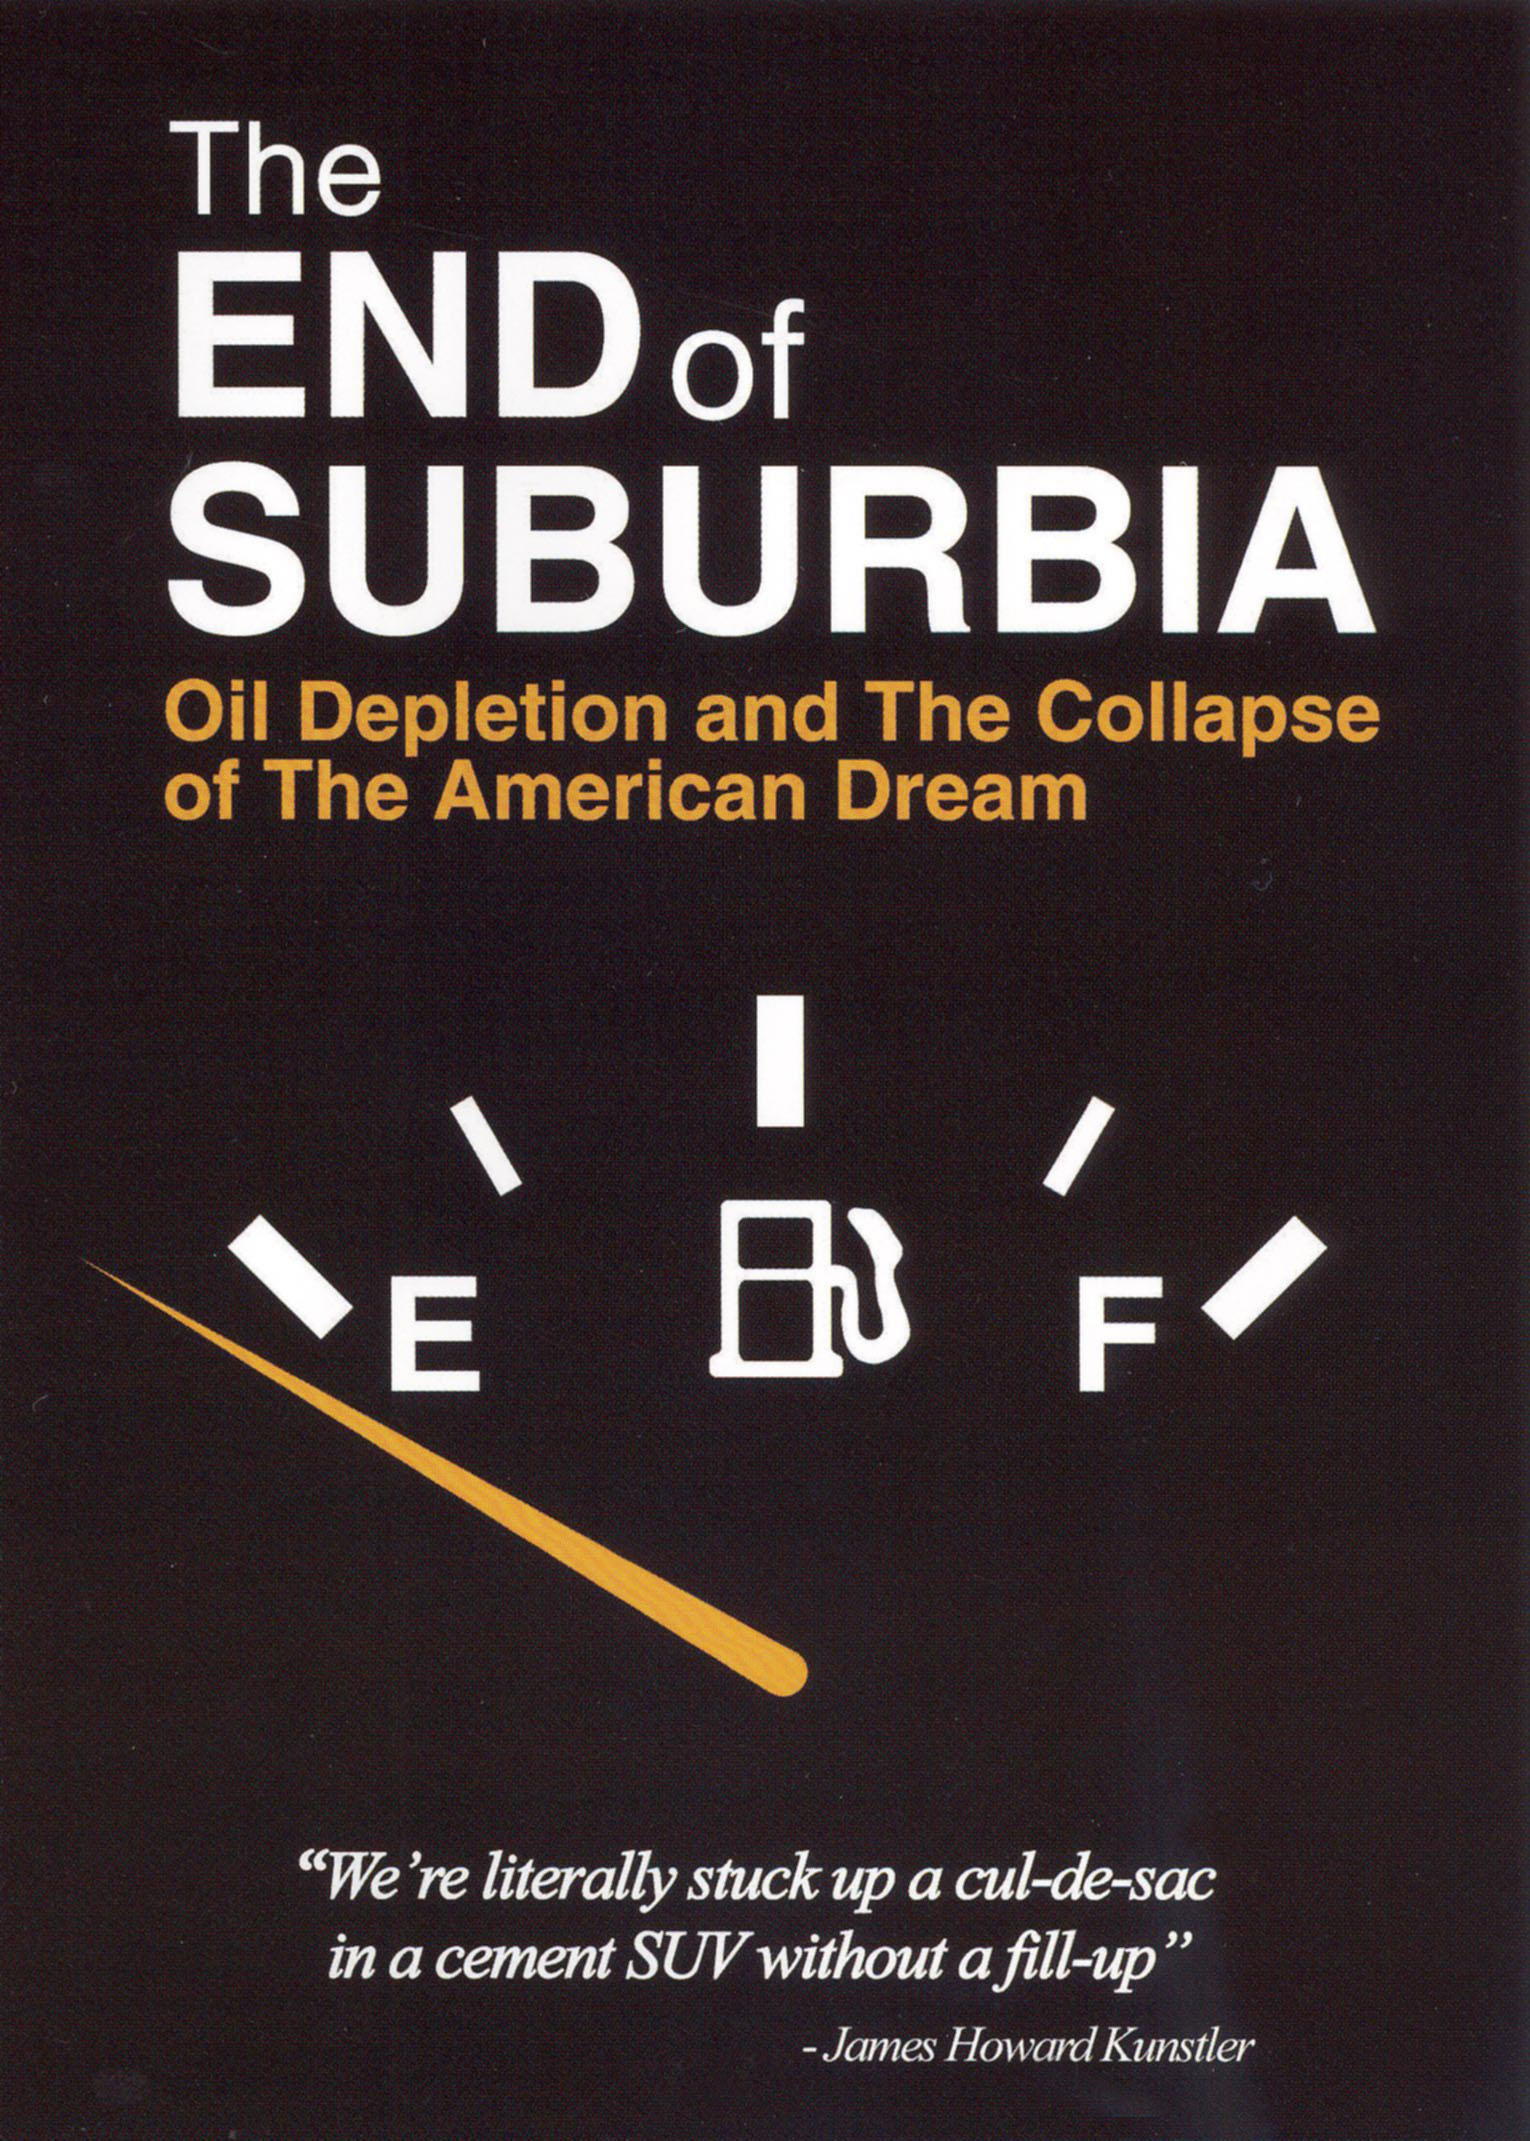 the collapse of the american dream A new poll by the new york times found the public is more pessimistic than it  was right after the financial collapse andrew ross sorkin of the.